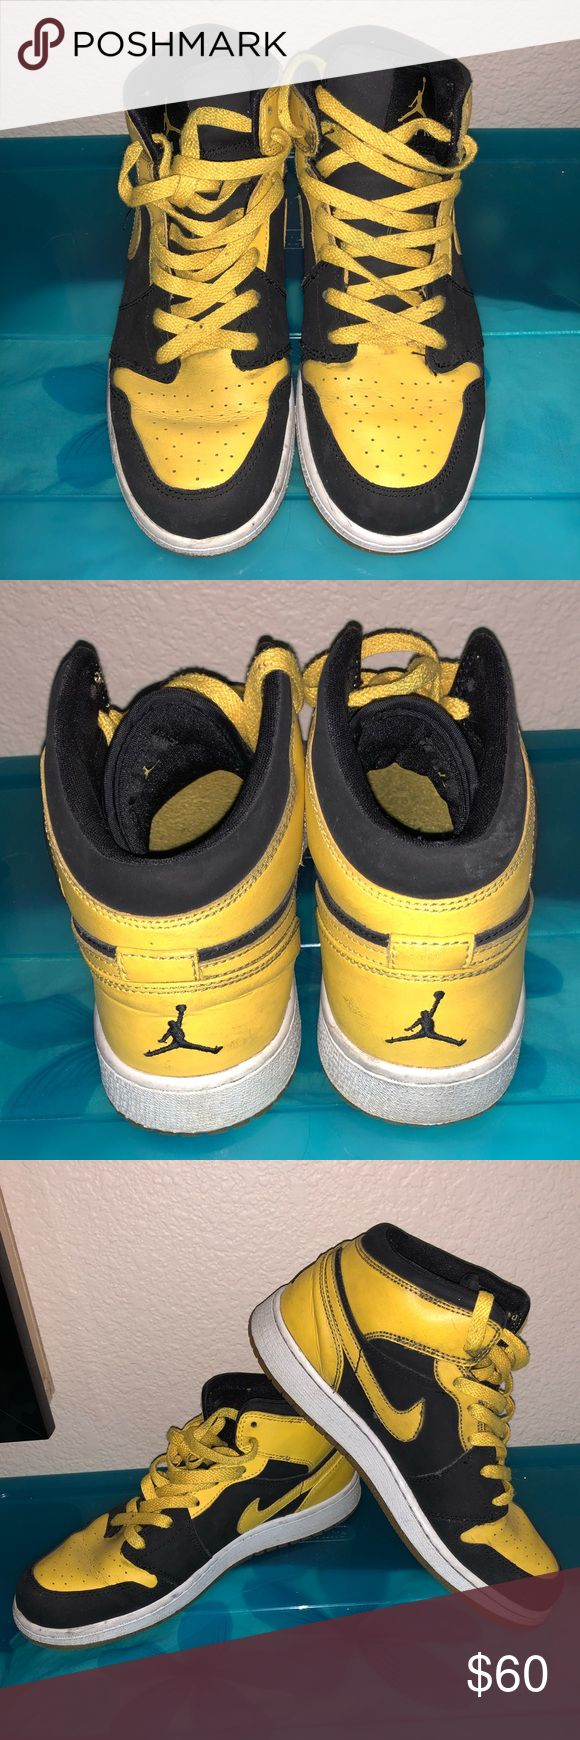 "Retro Jordan 1s ""New Love"" Size 6Y Used Retro Jordan 1s ""New Love"" Size 6Y. Yellow Leather/ Black Suede. Air Jordan Shoes Athletic Shoes"